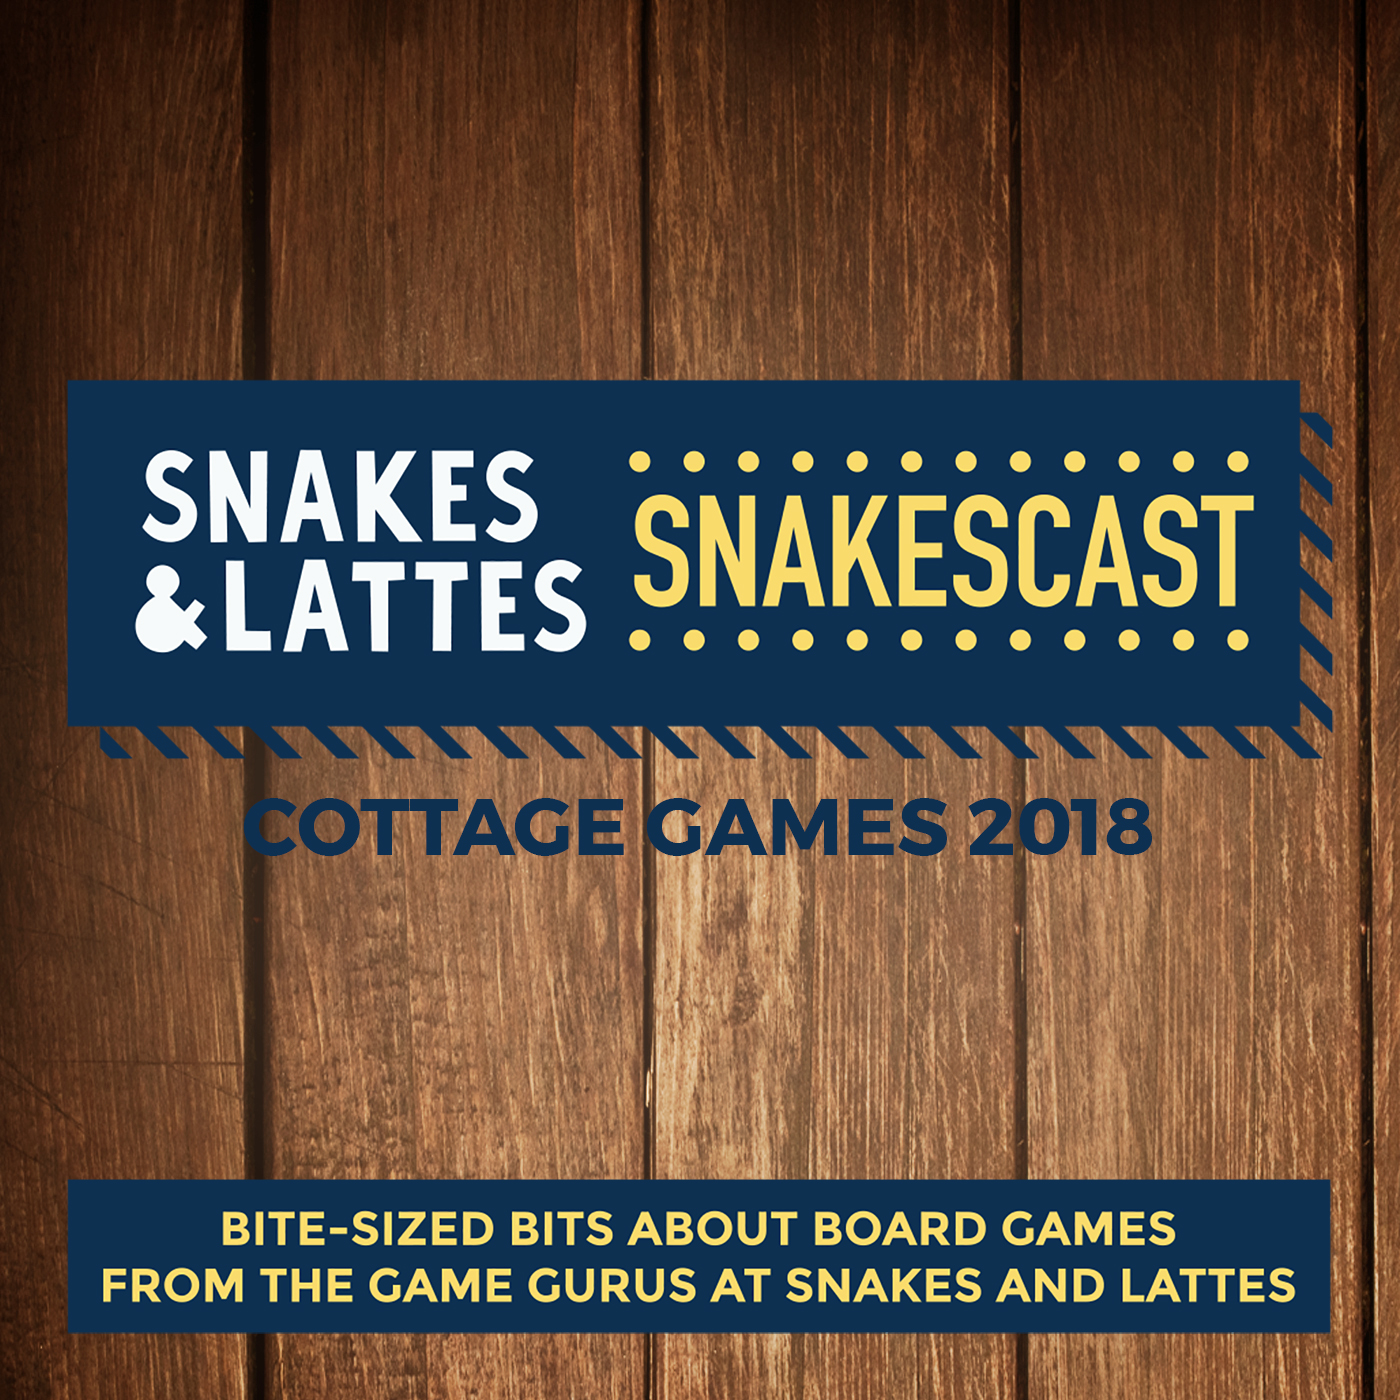 Cottage Games 2018, Part 1 – Starting Out